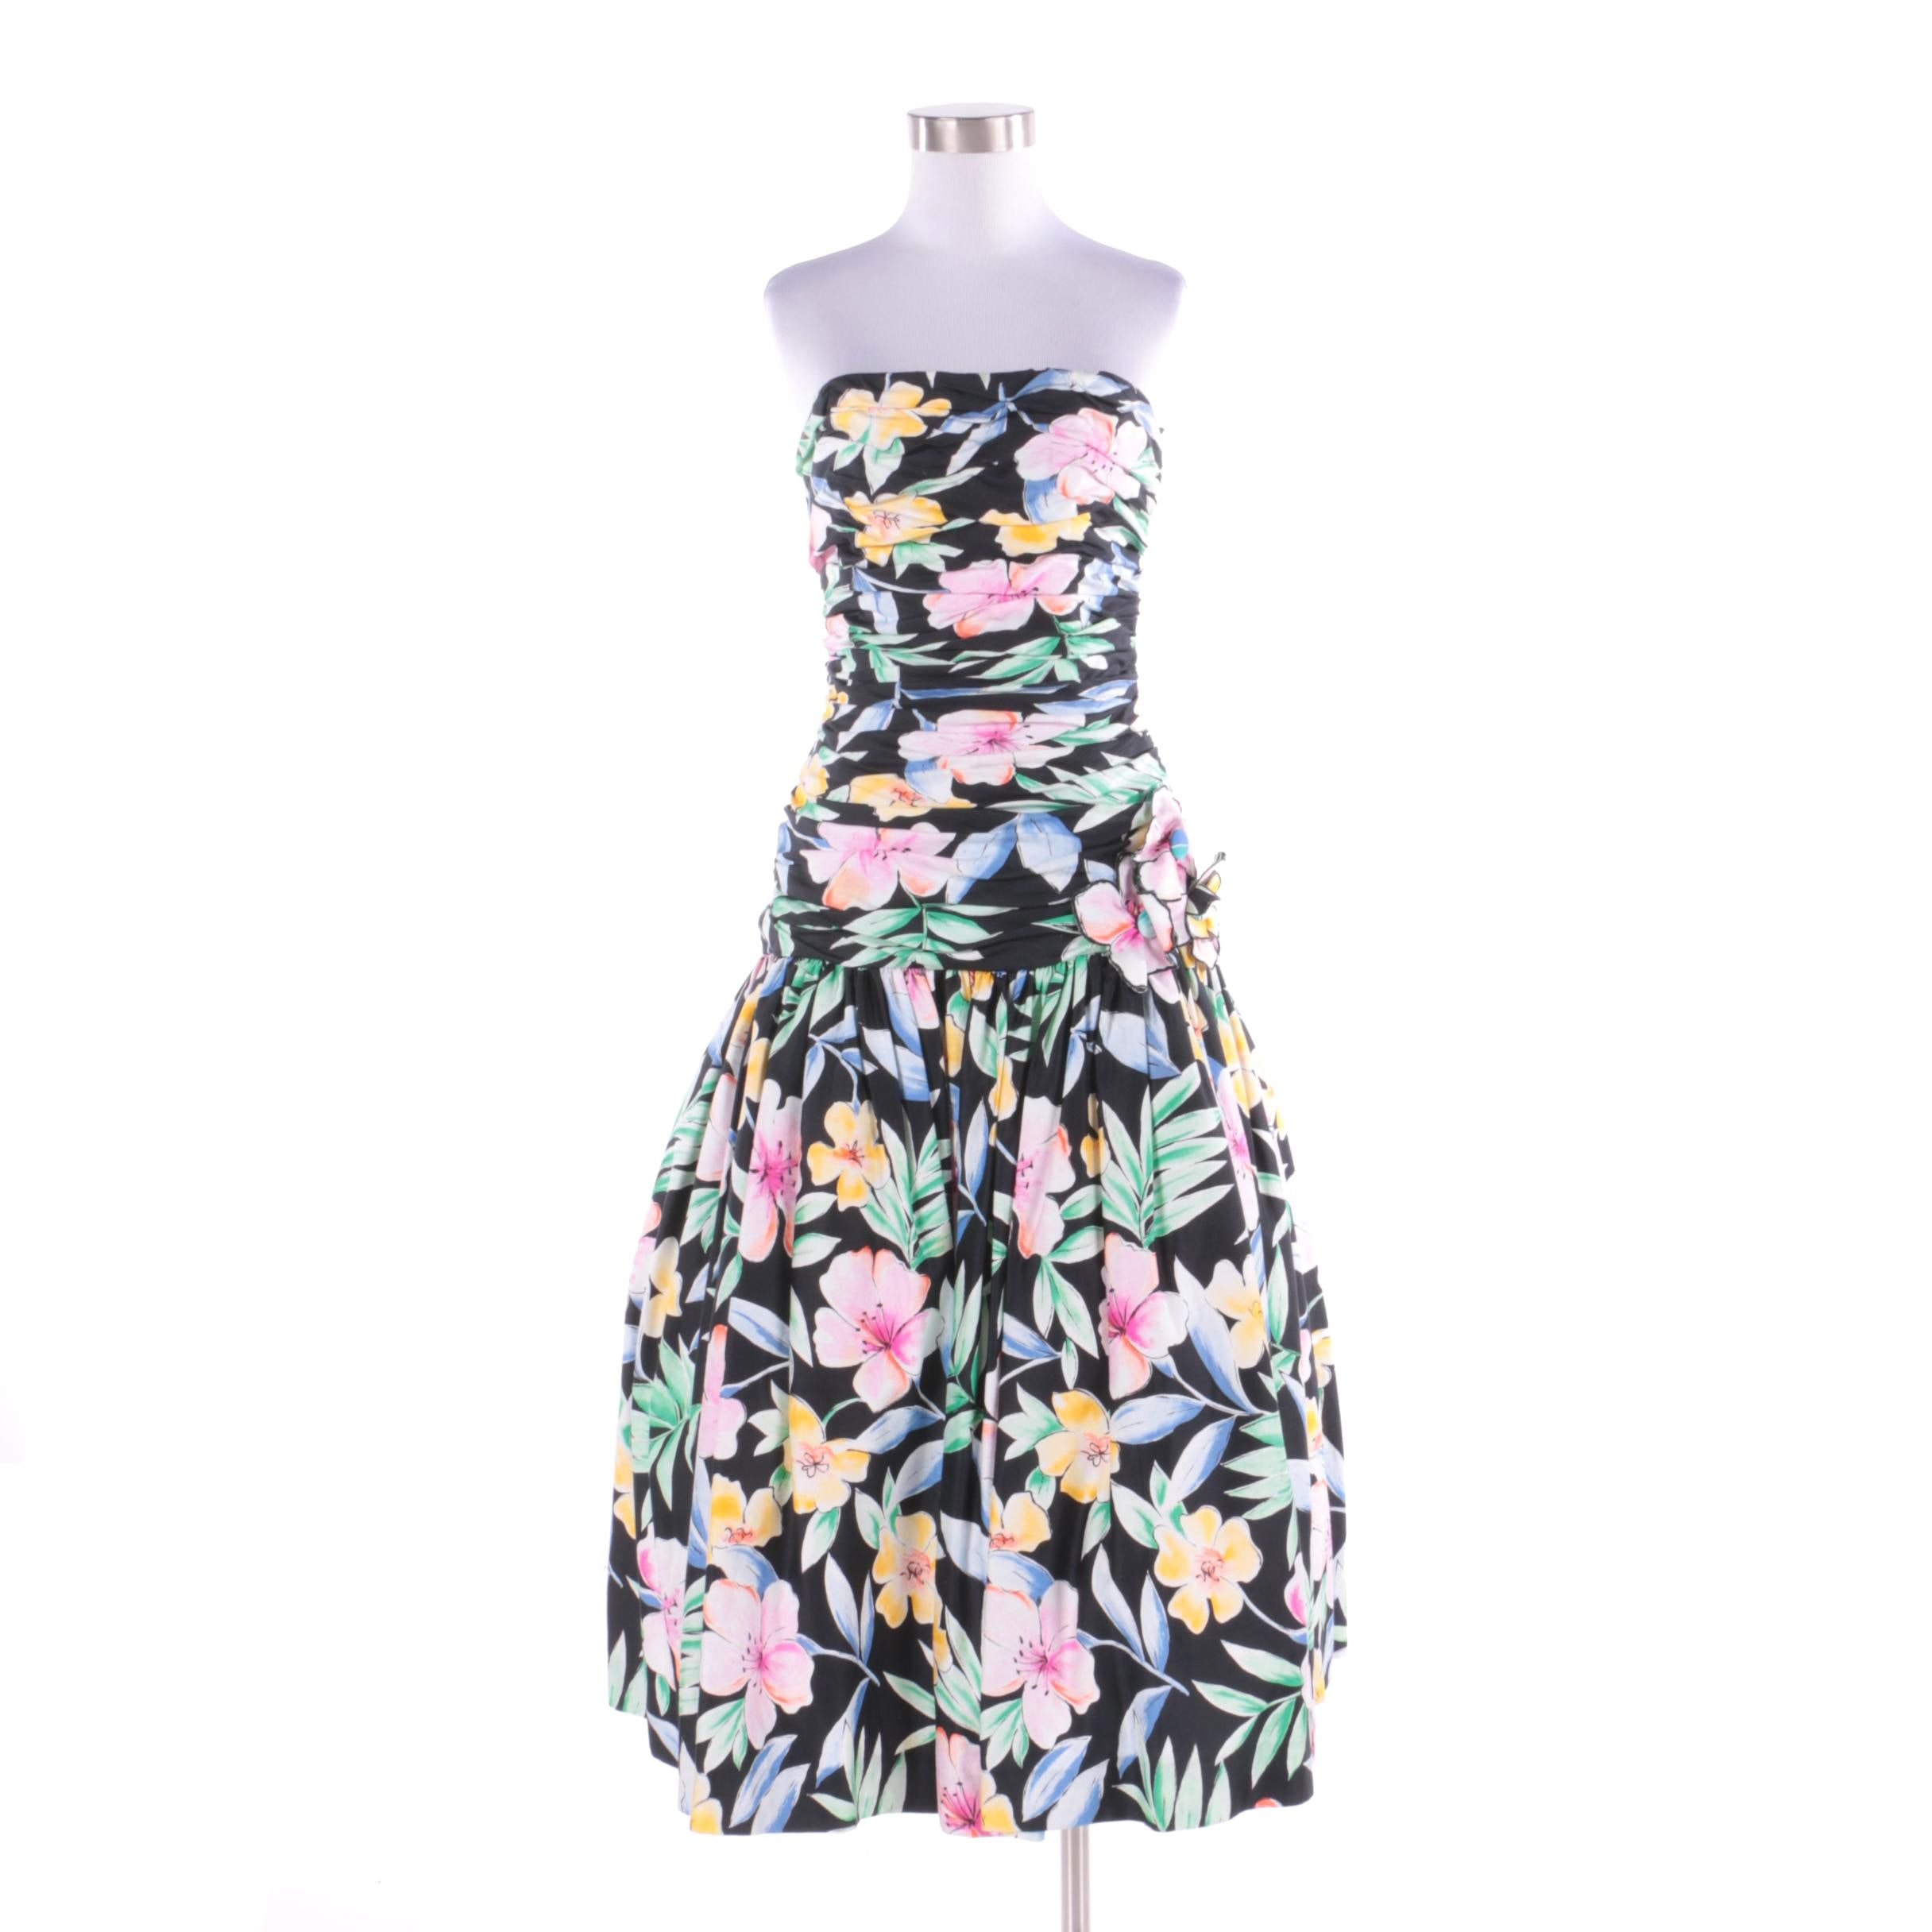 Vintage Victor Costa for Lord & Taylor Floral Print Strapless Cocktail Dress